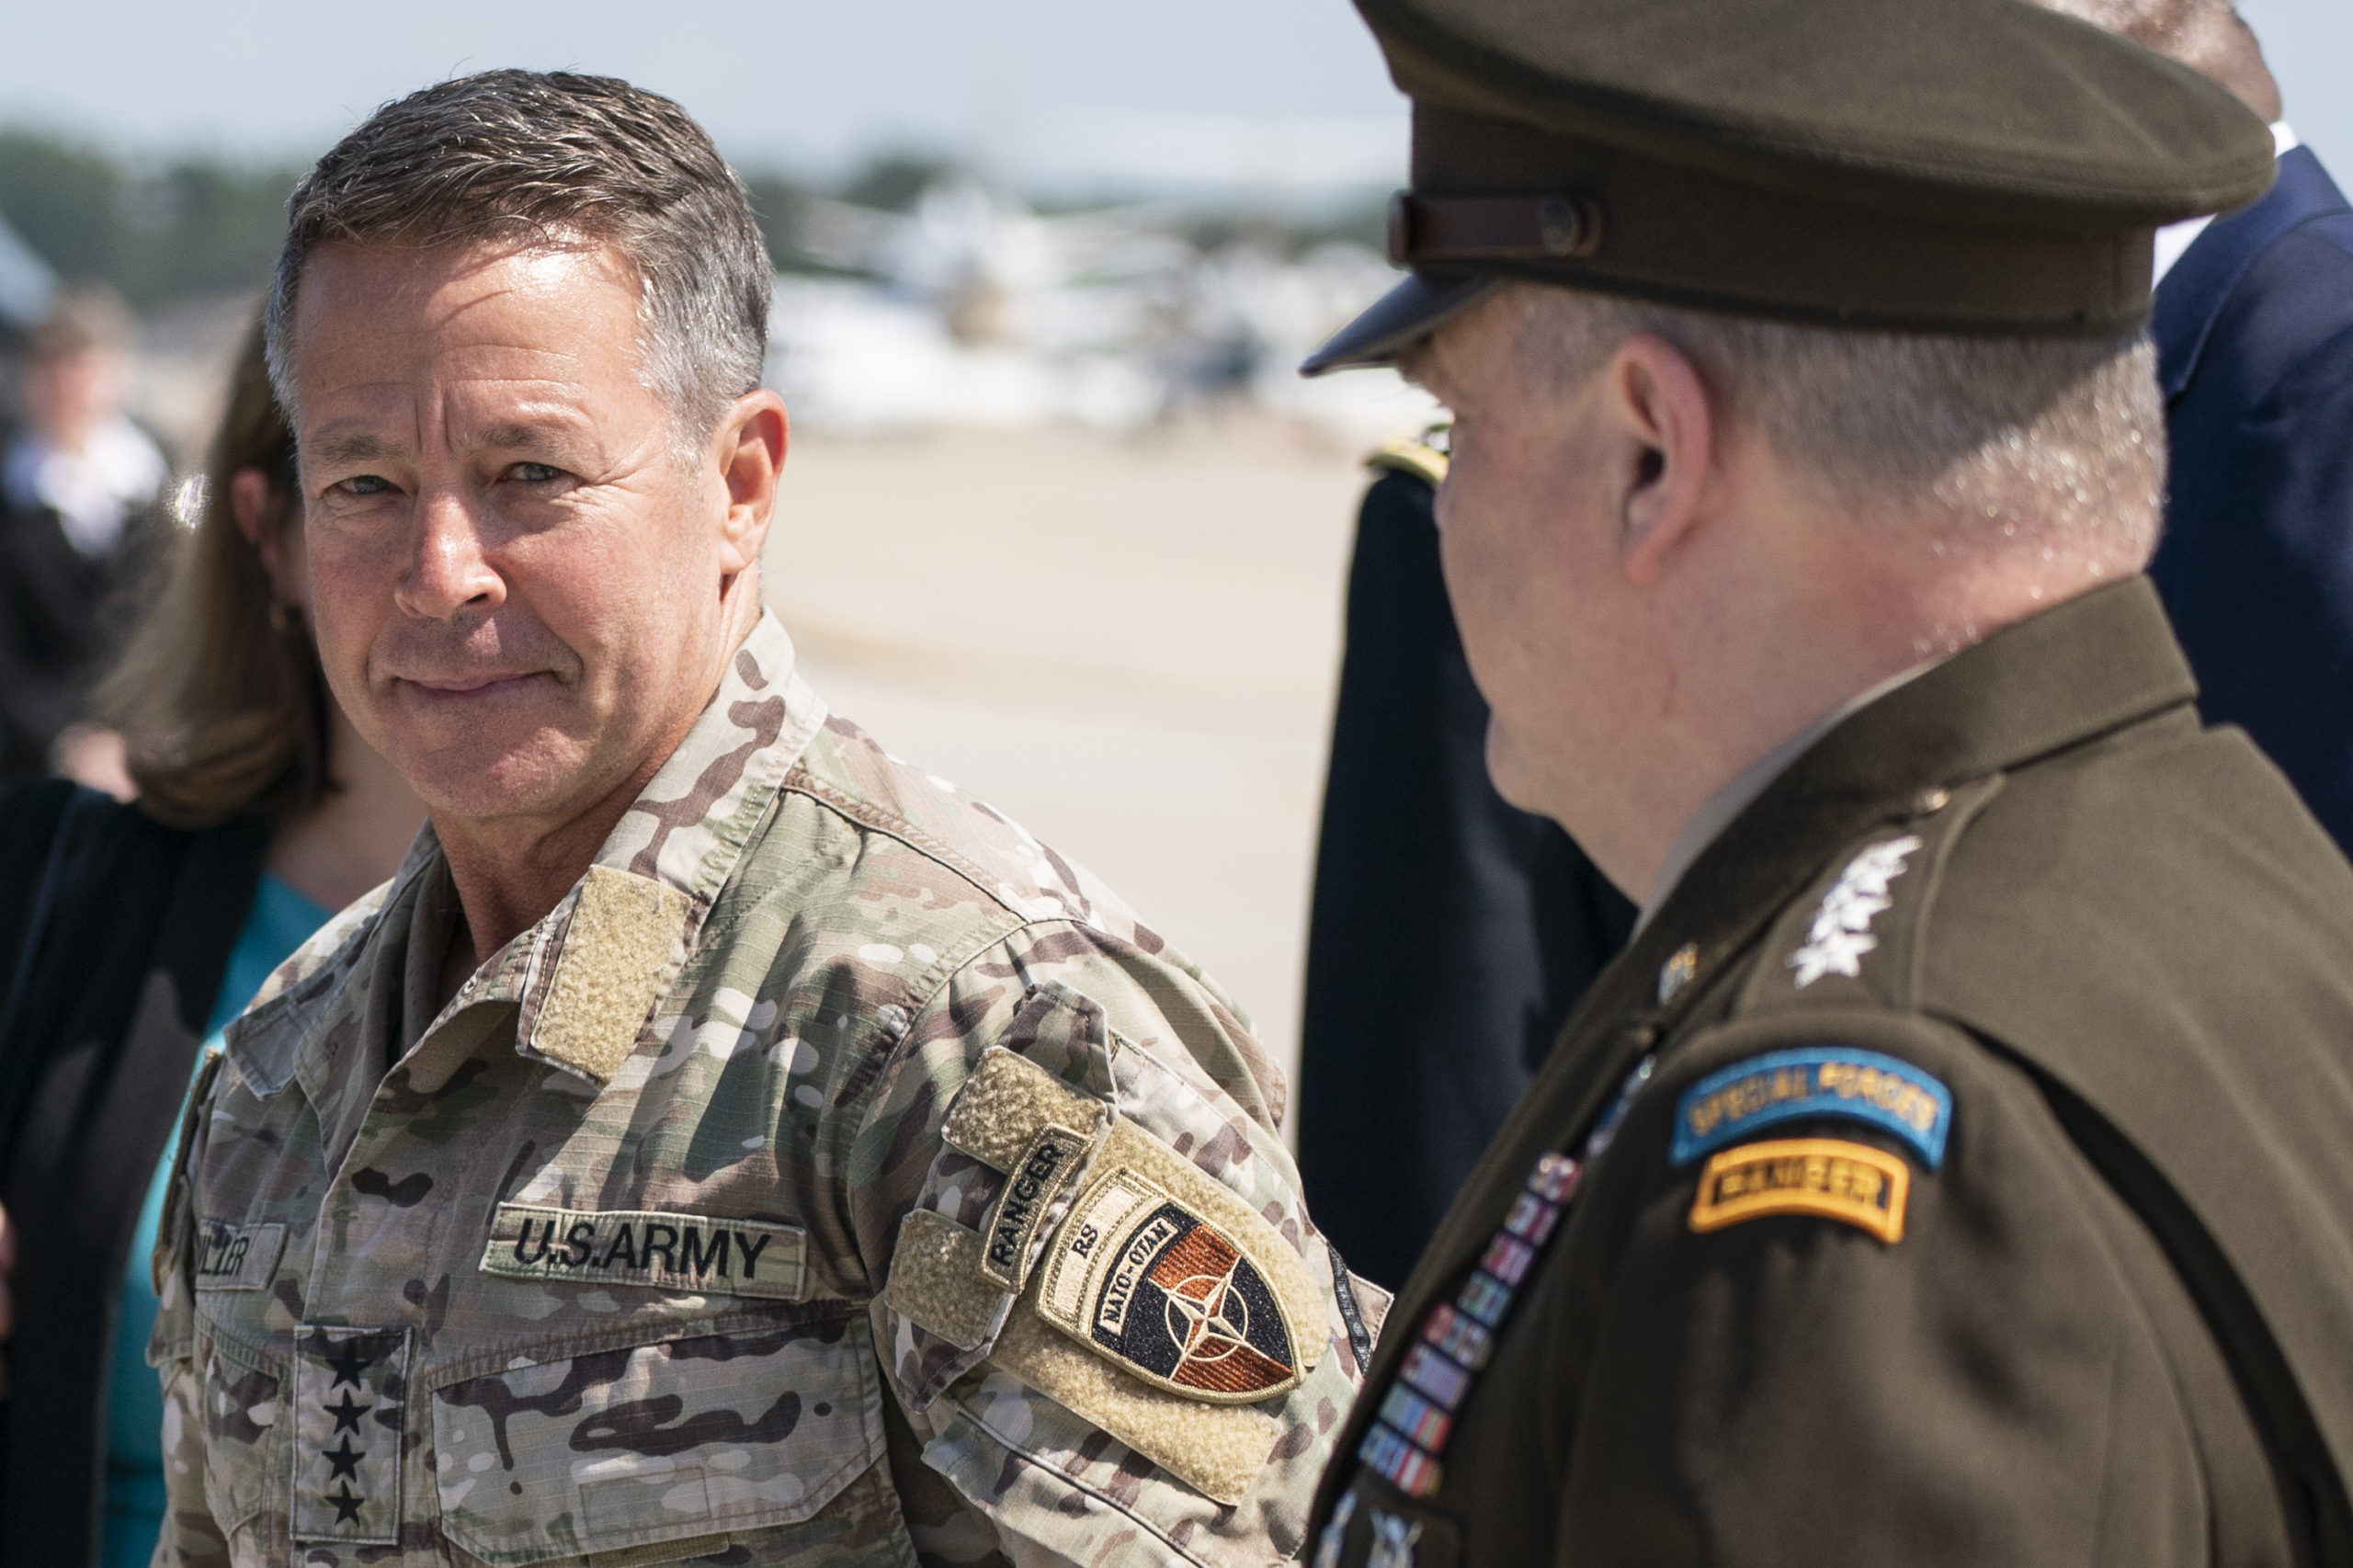 JOINT BASE ANDREWS, MD - JUNE 14: U.S. Army Gen. Scott Miller, the former top U.S. commander in Afghanistan(L), walks with Joint Chiefs Chairman Gen. Mark Milley, upon Millers return on July 14, 2021 at Andrews Air Force Base, Maryland. Gen. Mark Milley stepped down on July 12, 2021 and transferred command duties to Gen. Kenneth McKenzie as the US military withdrawal from Afghanistan continues. (Photo by Alex Brandon - Pool/Getty Images)